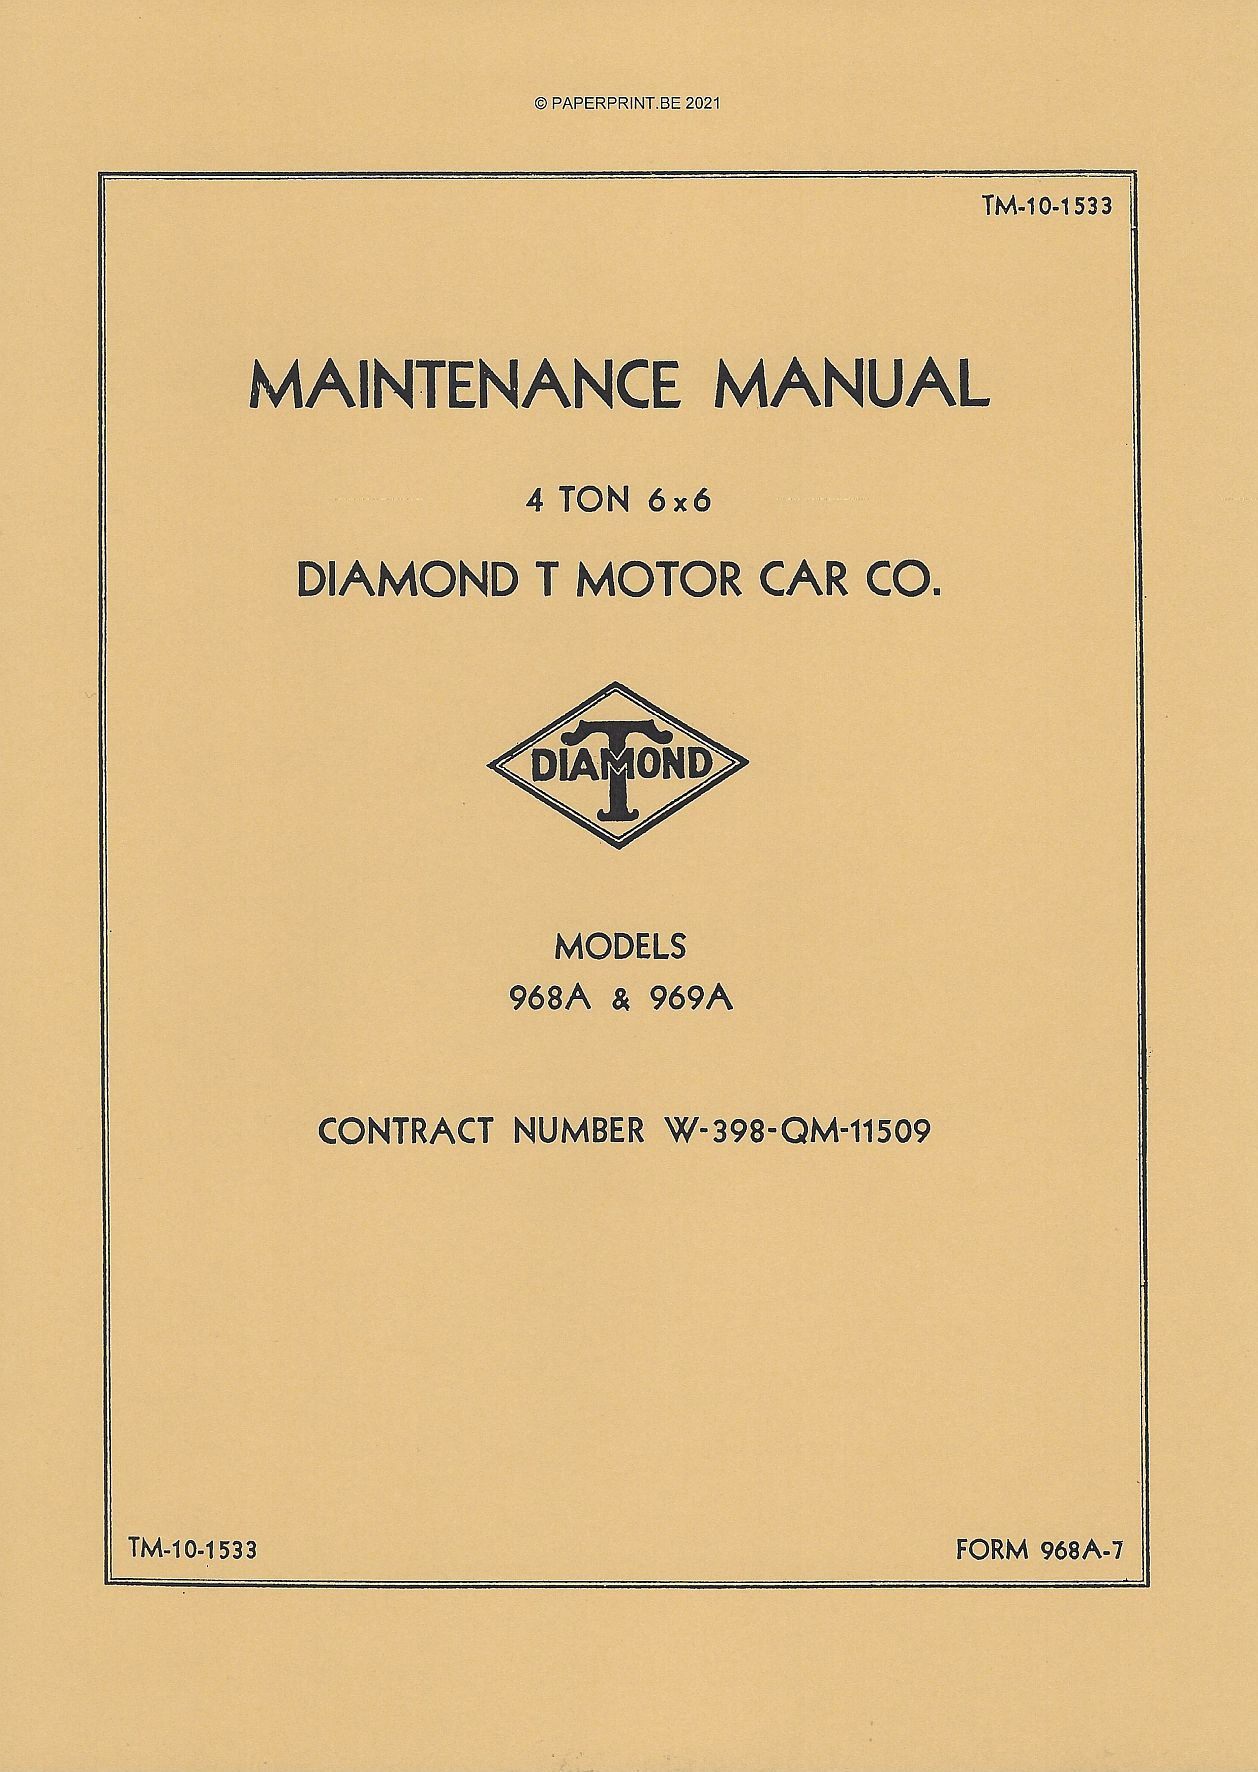 TM 10-1533 US DIAMOND T 968A & 969A MAINTENANCE MANUAL